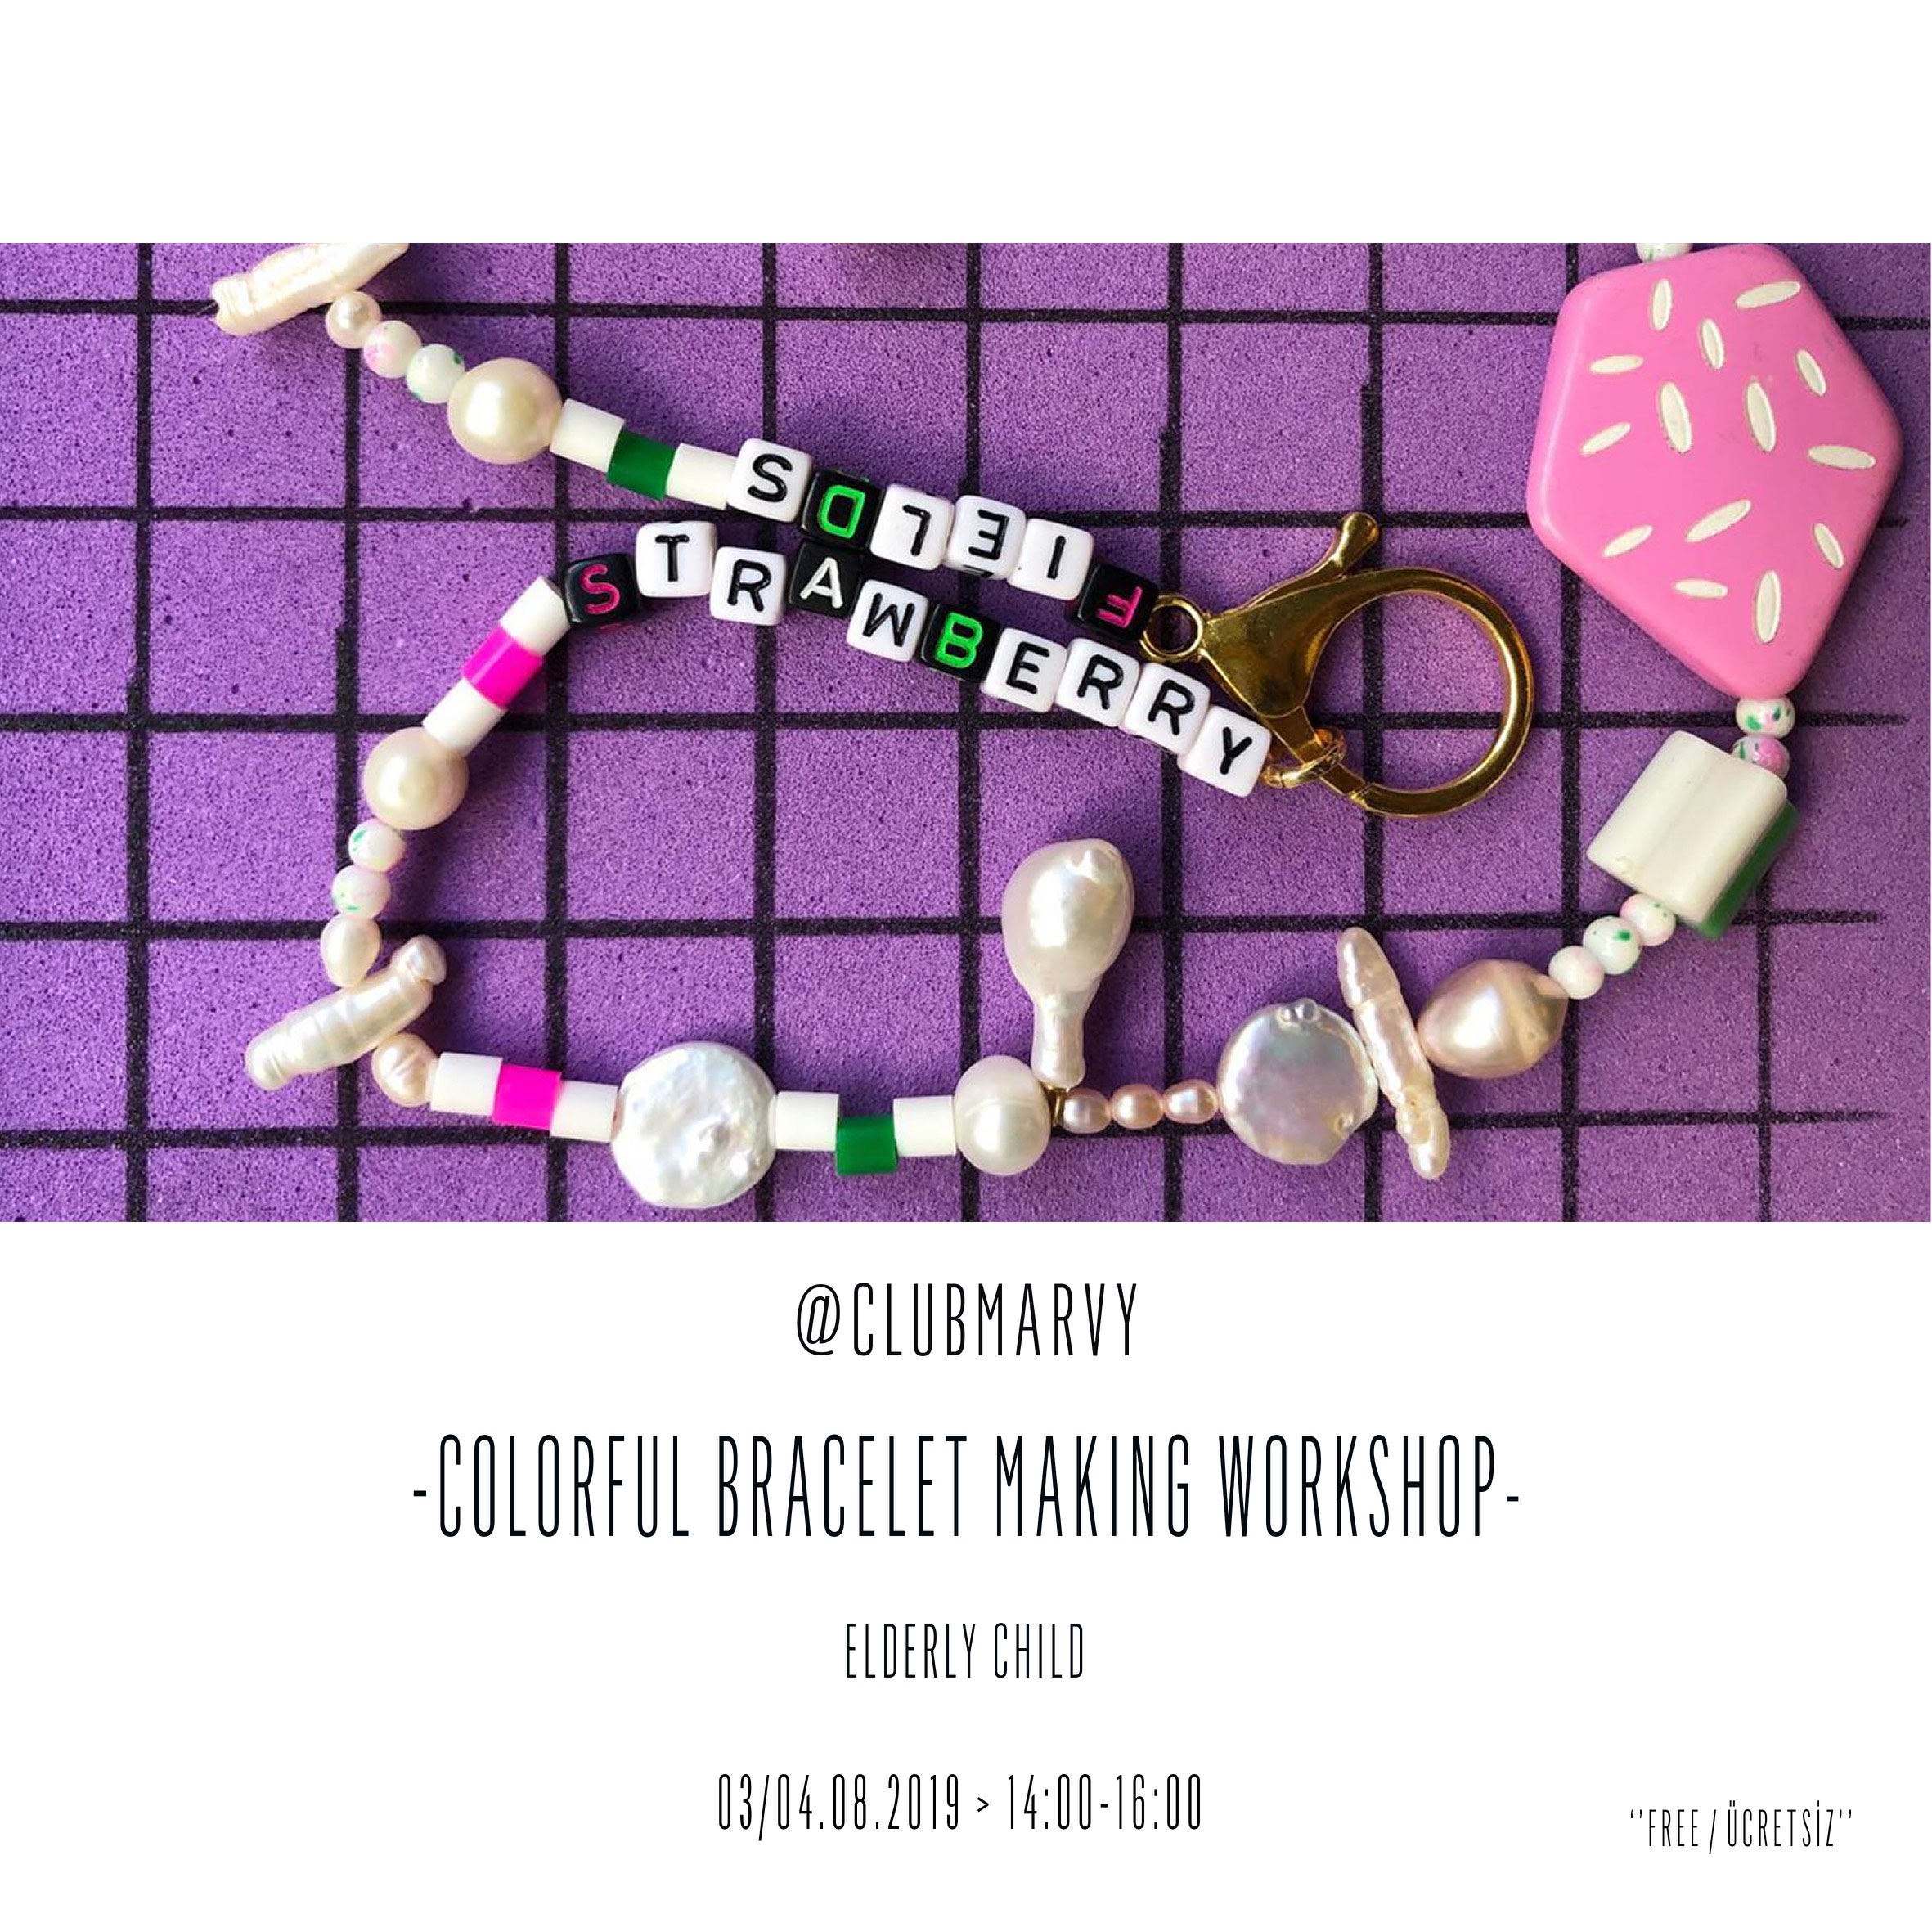 Colorful Bracelet Making Workshop